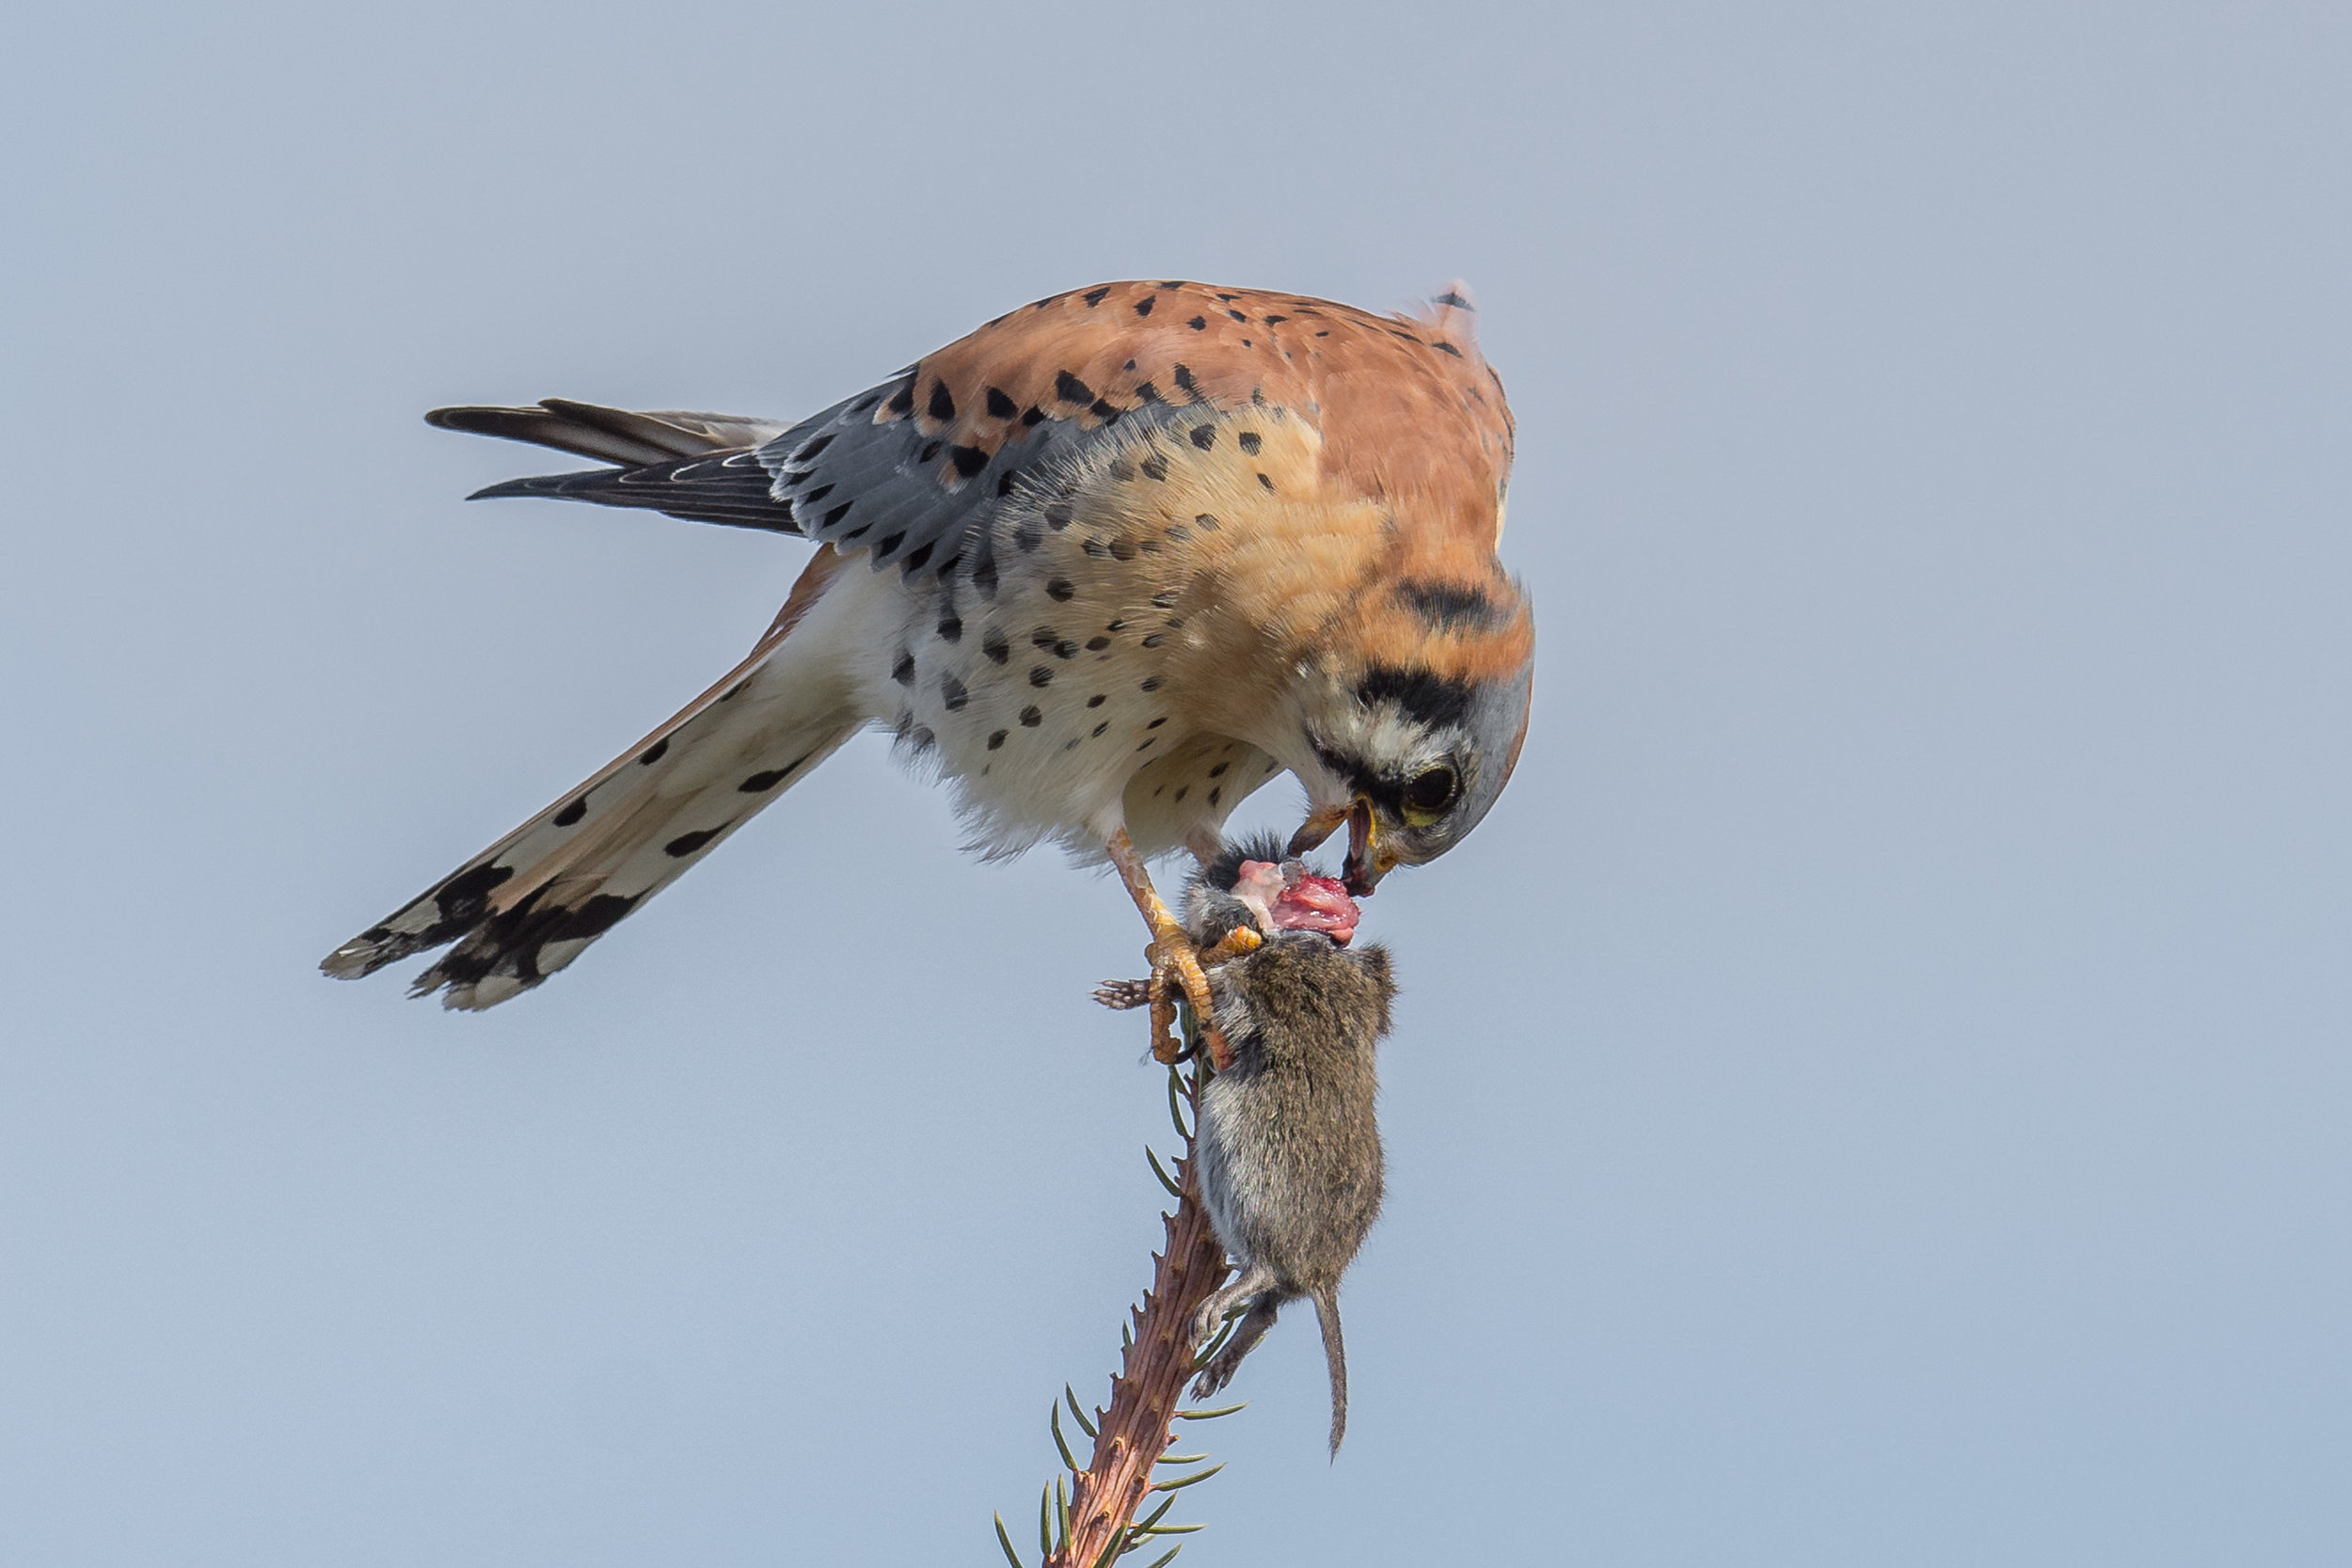 American Kestrel (Falco sparverius), Diamond Creek Pond, WAS (NV), 11-29-2016  This encounter was at the end of my walk around the Diamond Creek Pond. I had put my camera away when I saw this Kestrel in the top of a conifer. I pulled out my camera and was able to capture this moment. Why do some ranchers and farmers think raptors are pests (D7200 with 500mm f/4 lens, 750mm focal length, 1/1250s, f/5.6, ISO180, +.3EV)?